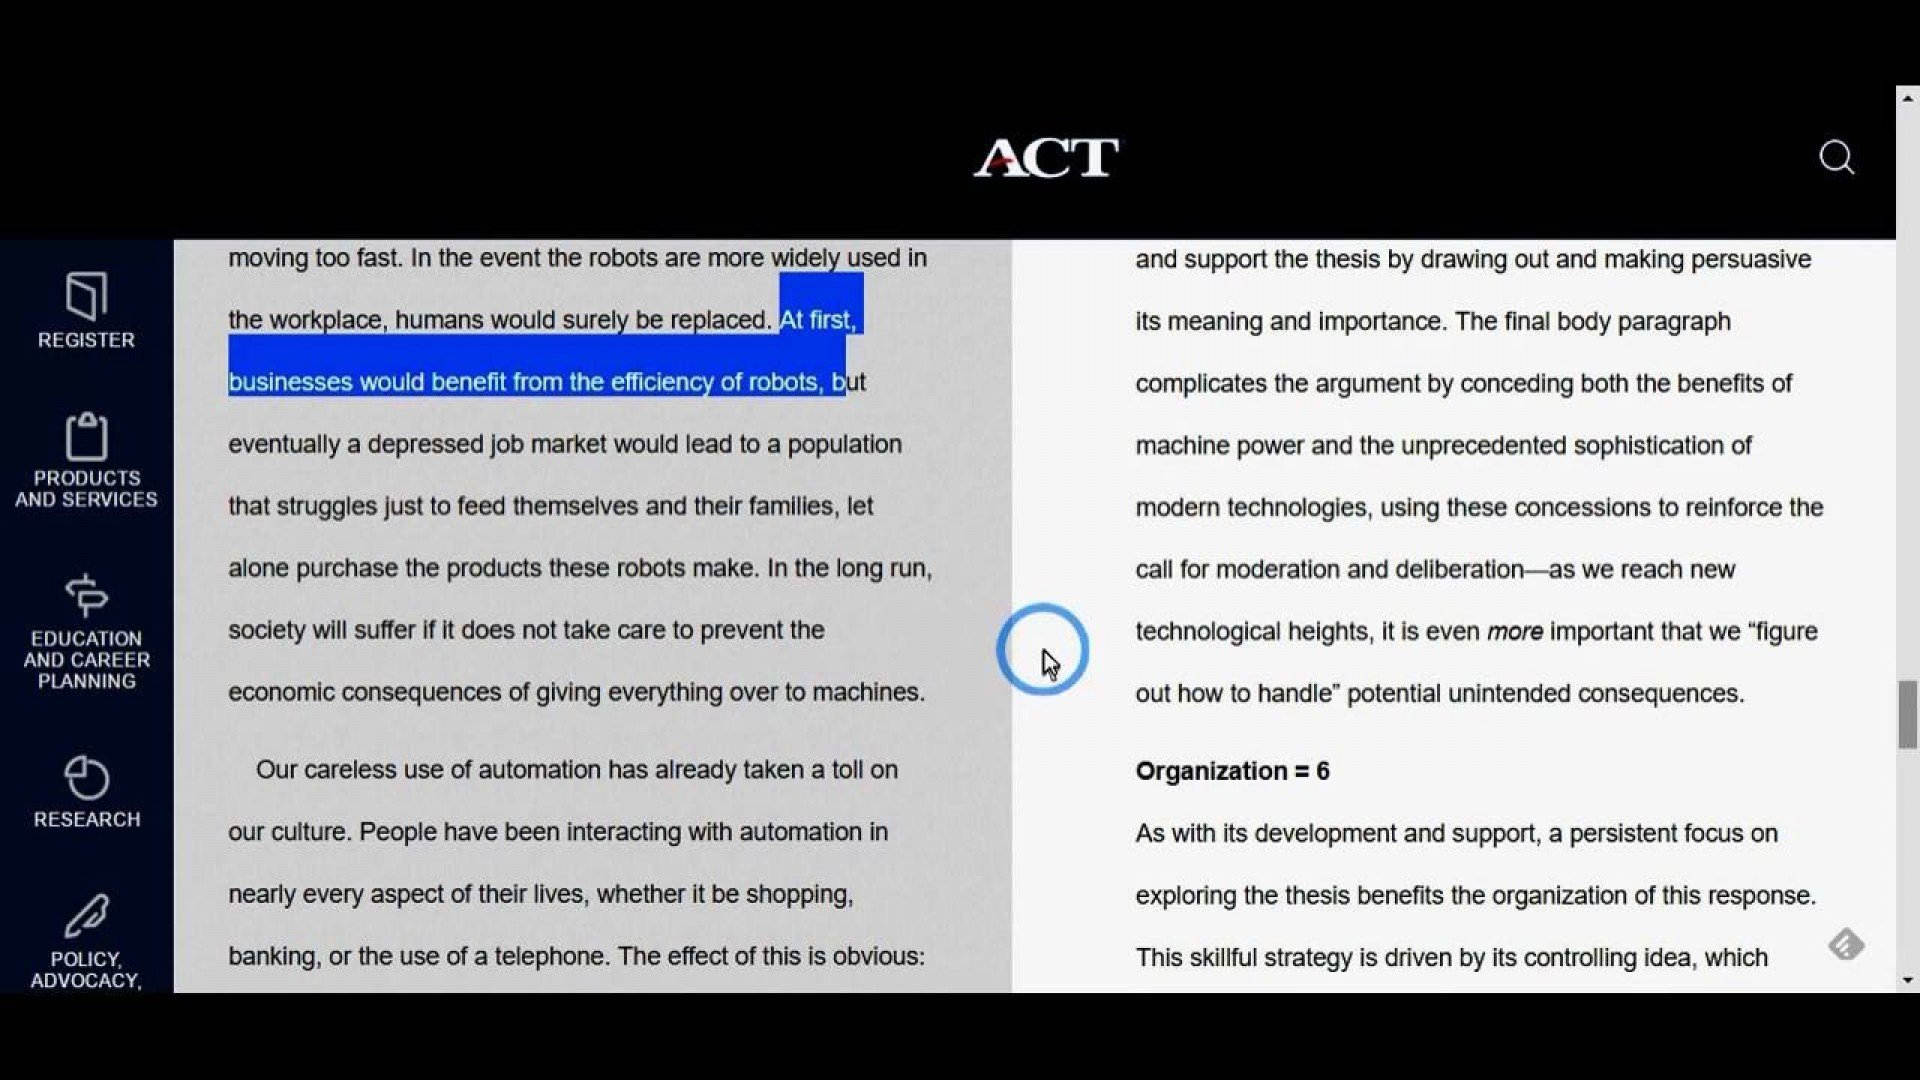 014 How To Write Act Essay Example Wonderful Good Do You And Scene In An A Perfect 1920